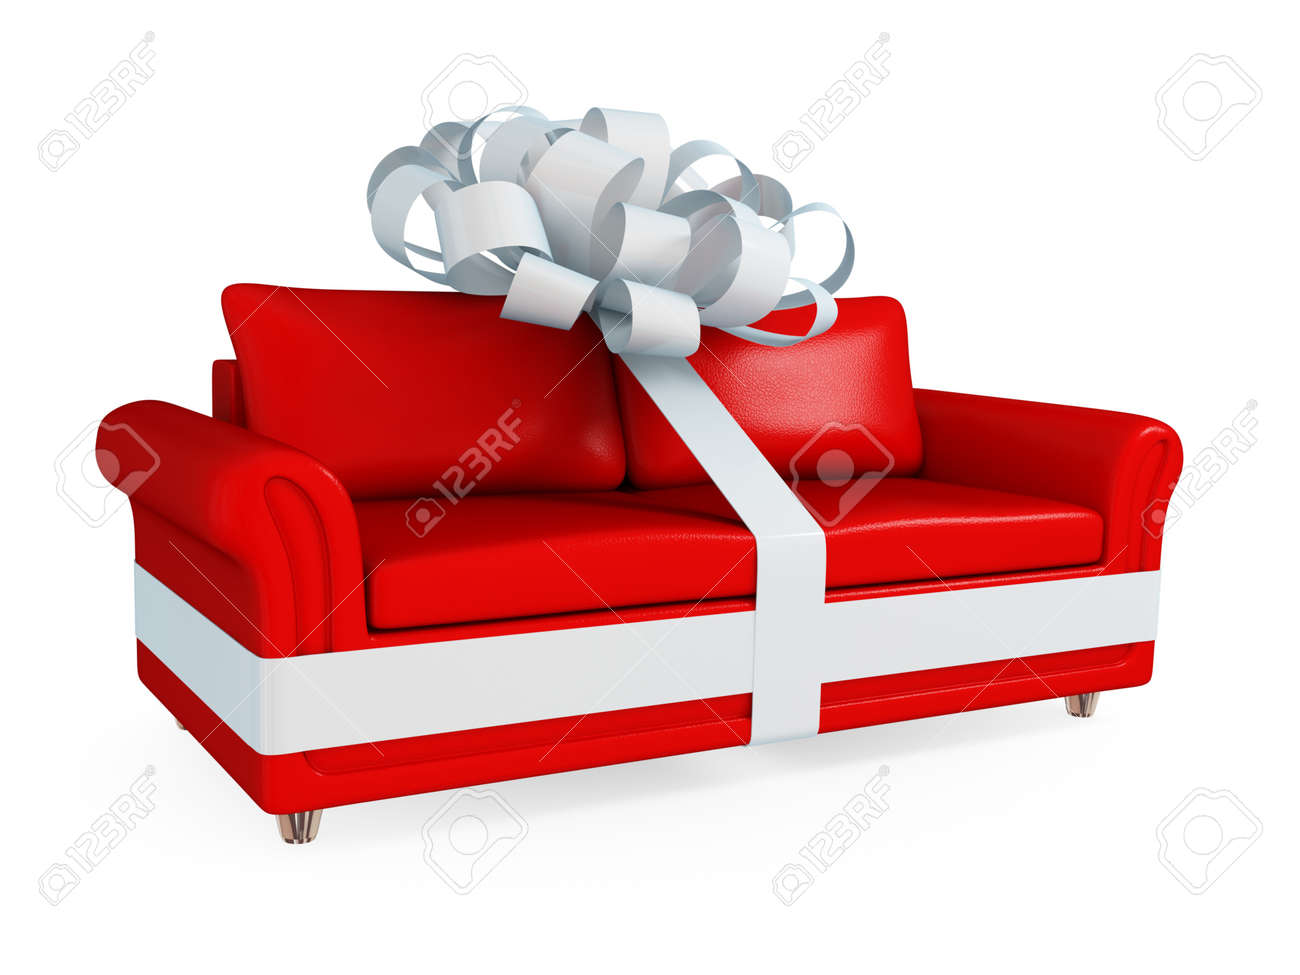 Excellent Red Leather Sofa Wrapped With A White Ribbon Big Sale Concept Pdpeps Interior Chair Design Pdpepsorg